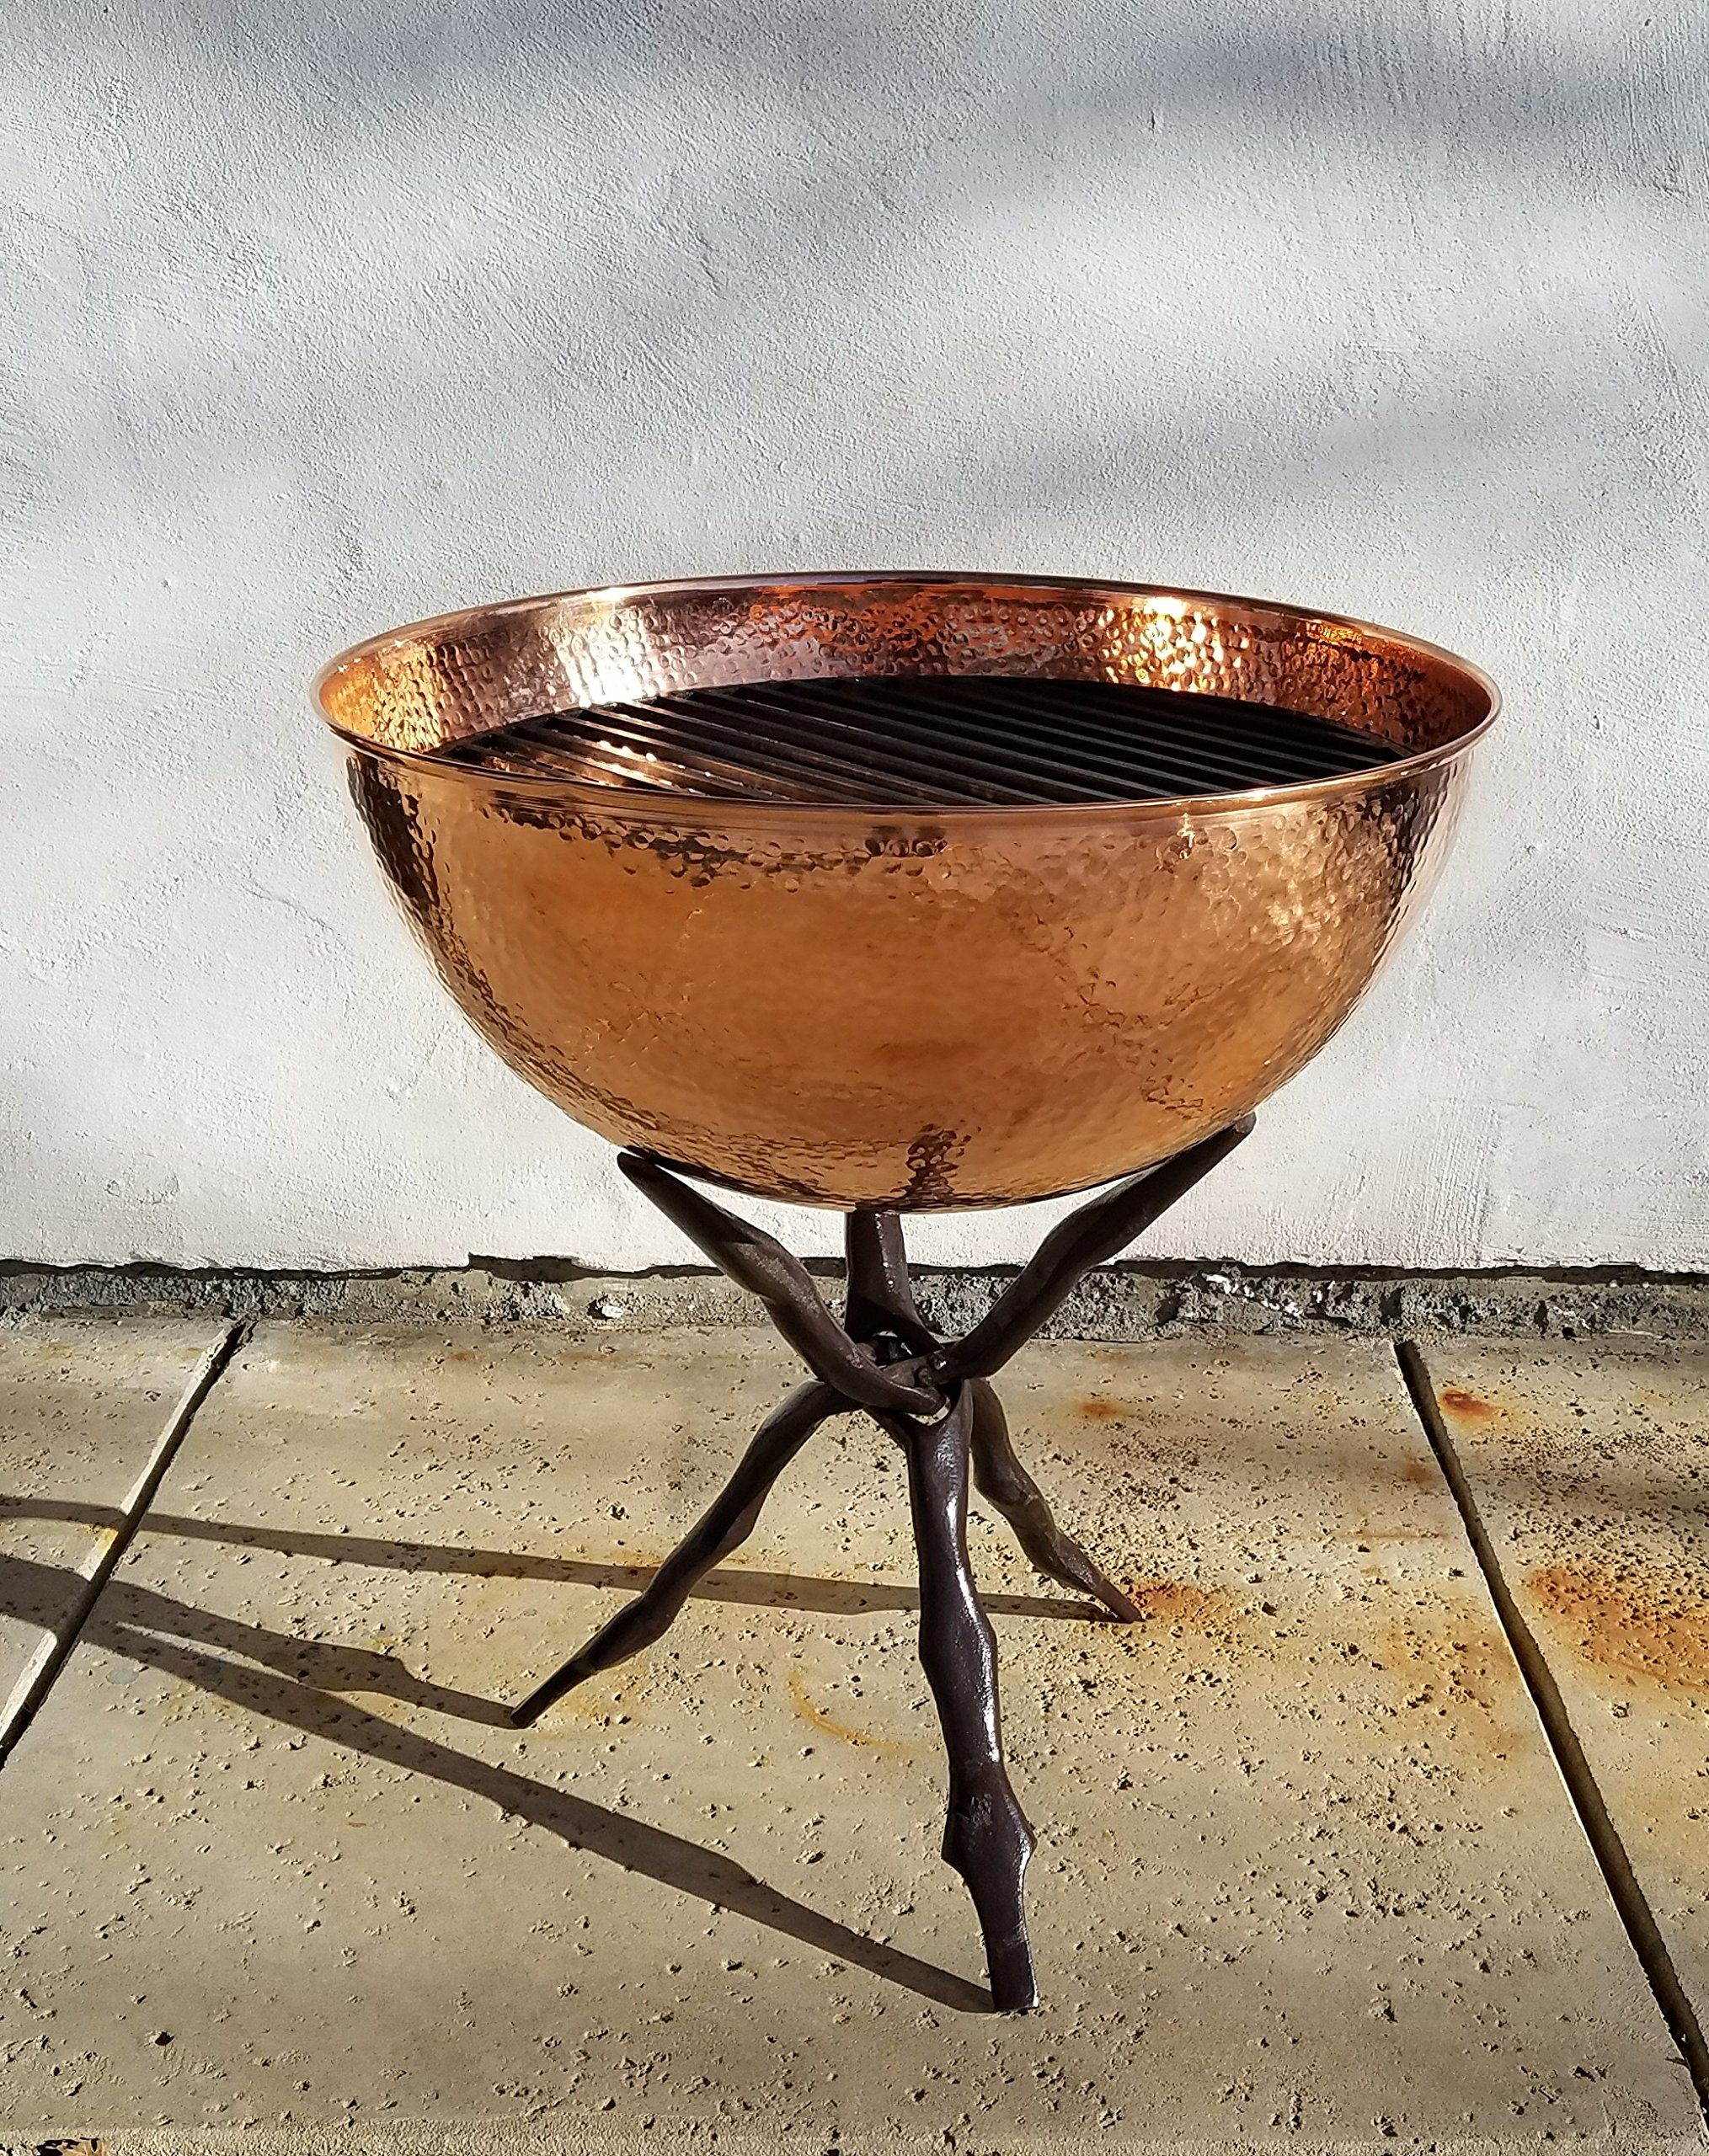 Passage FP-23-HC-CS Fire Pit & Collapsible Stand, Hammered Copper - Collapsible stand Solid copper Lid and grate - patio, outdoor-decor, fire-pits-outdoor-fireplaces - A11sSQxEIRL -